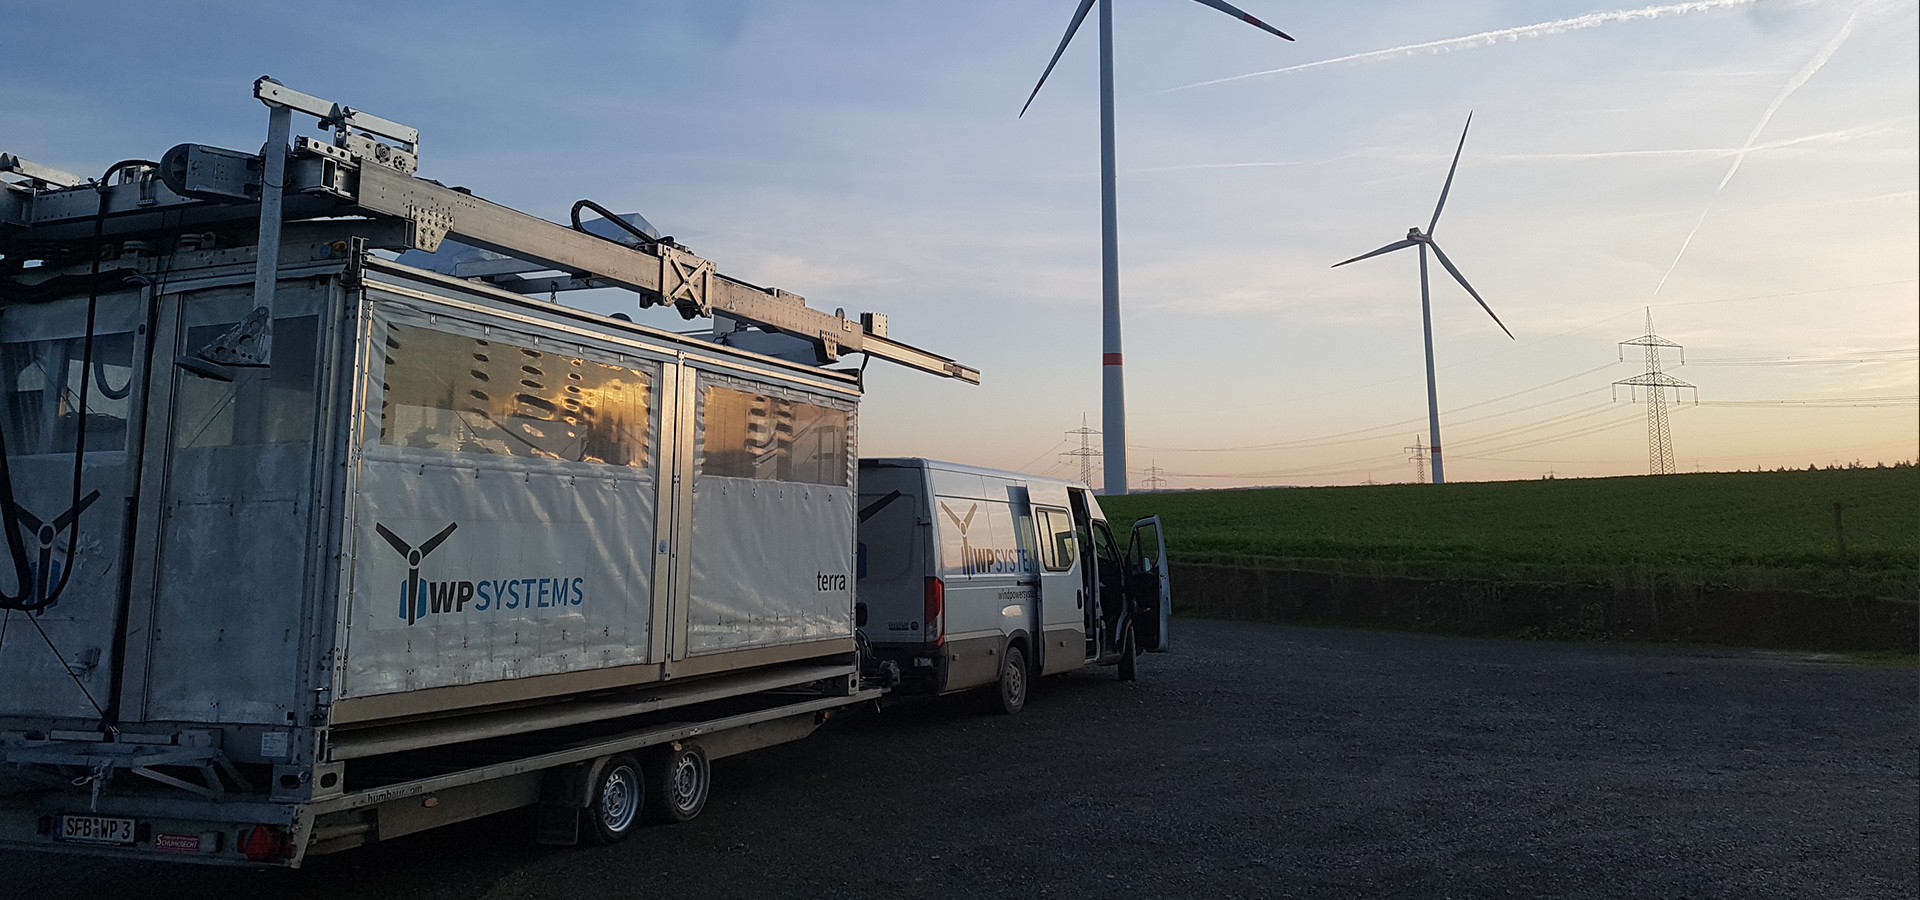 Rotor blade access system terra 1.1 can be rented for your next job.